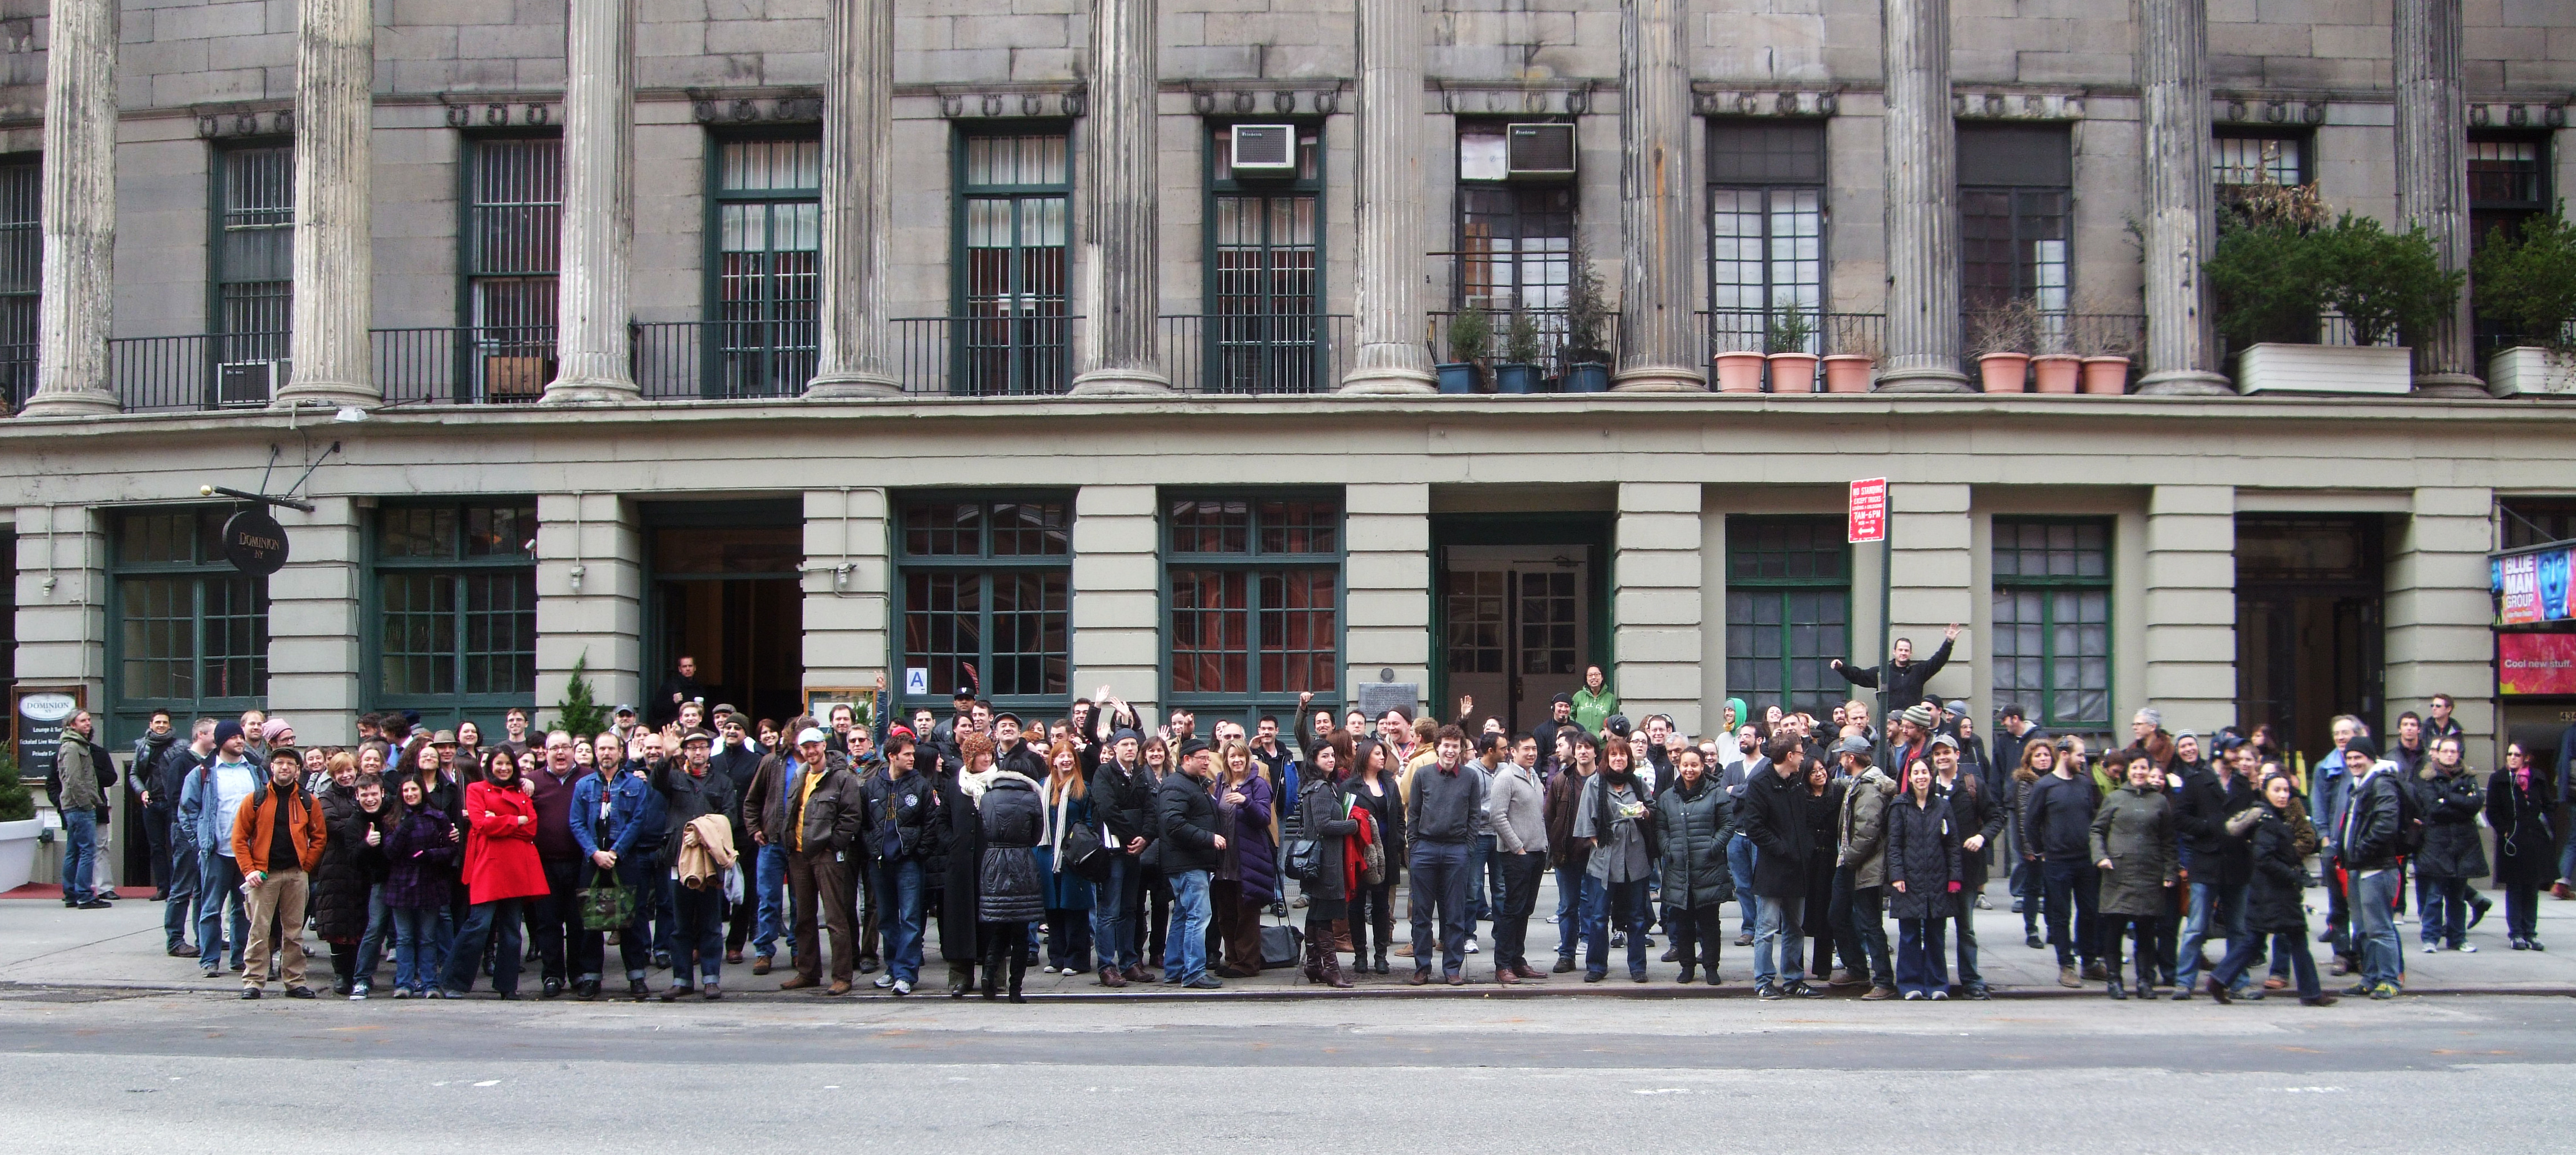 Employees of the Public Theater during a fire drill on March 25, 2011. Photograph by Jay Duckworth